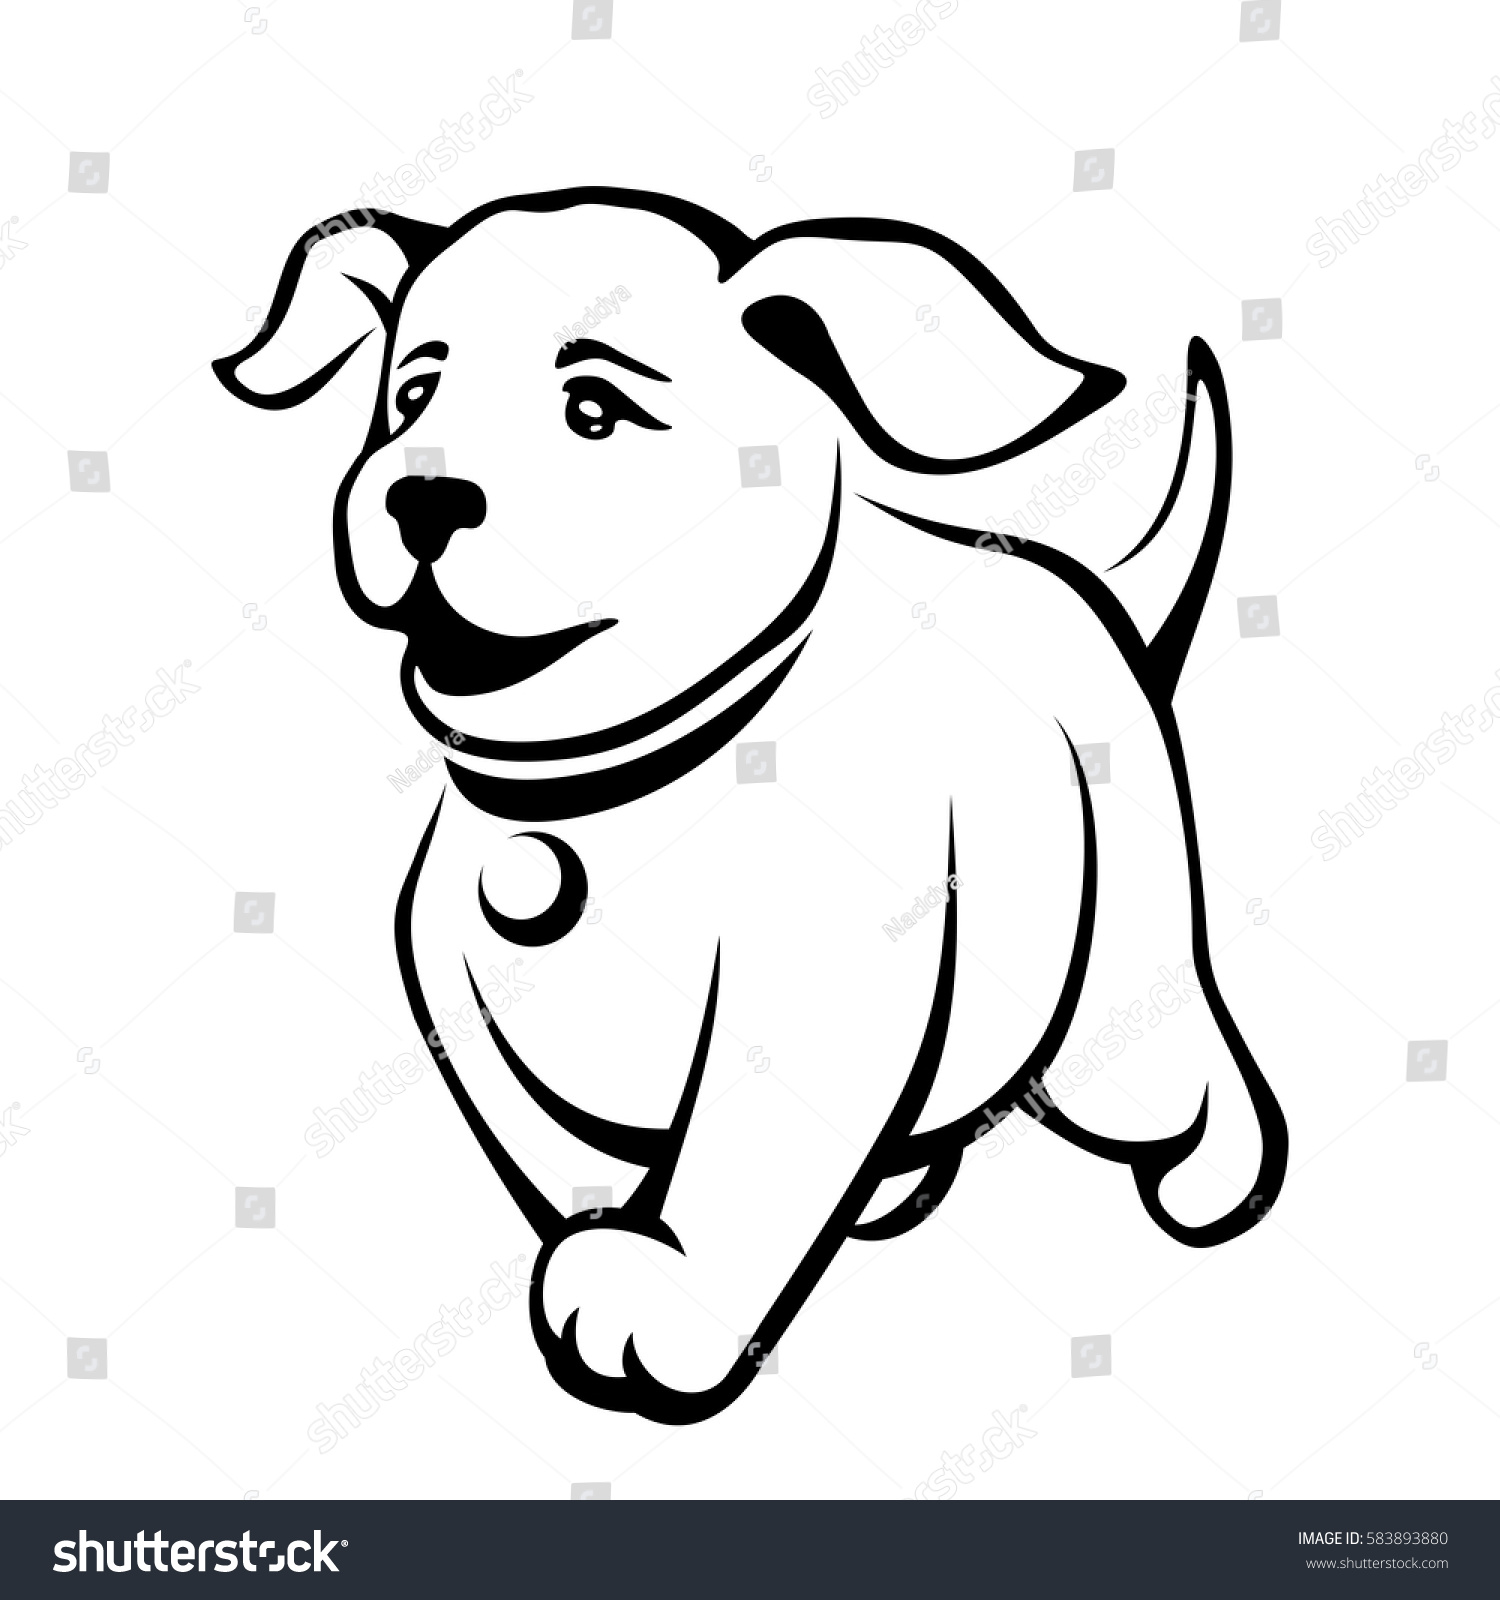 Contour Line Drawing Of A Dog : Vector black contour drawing cute running stock